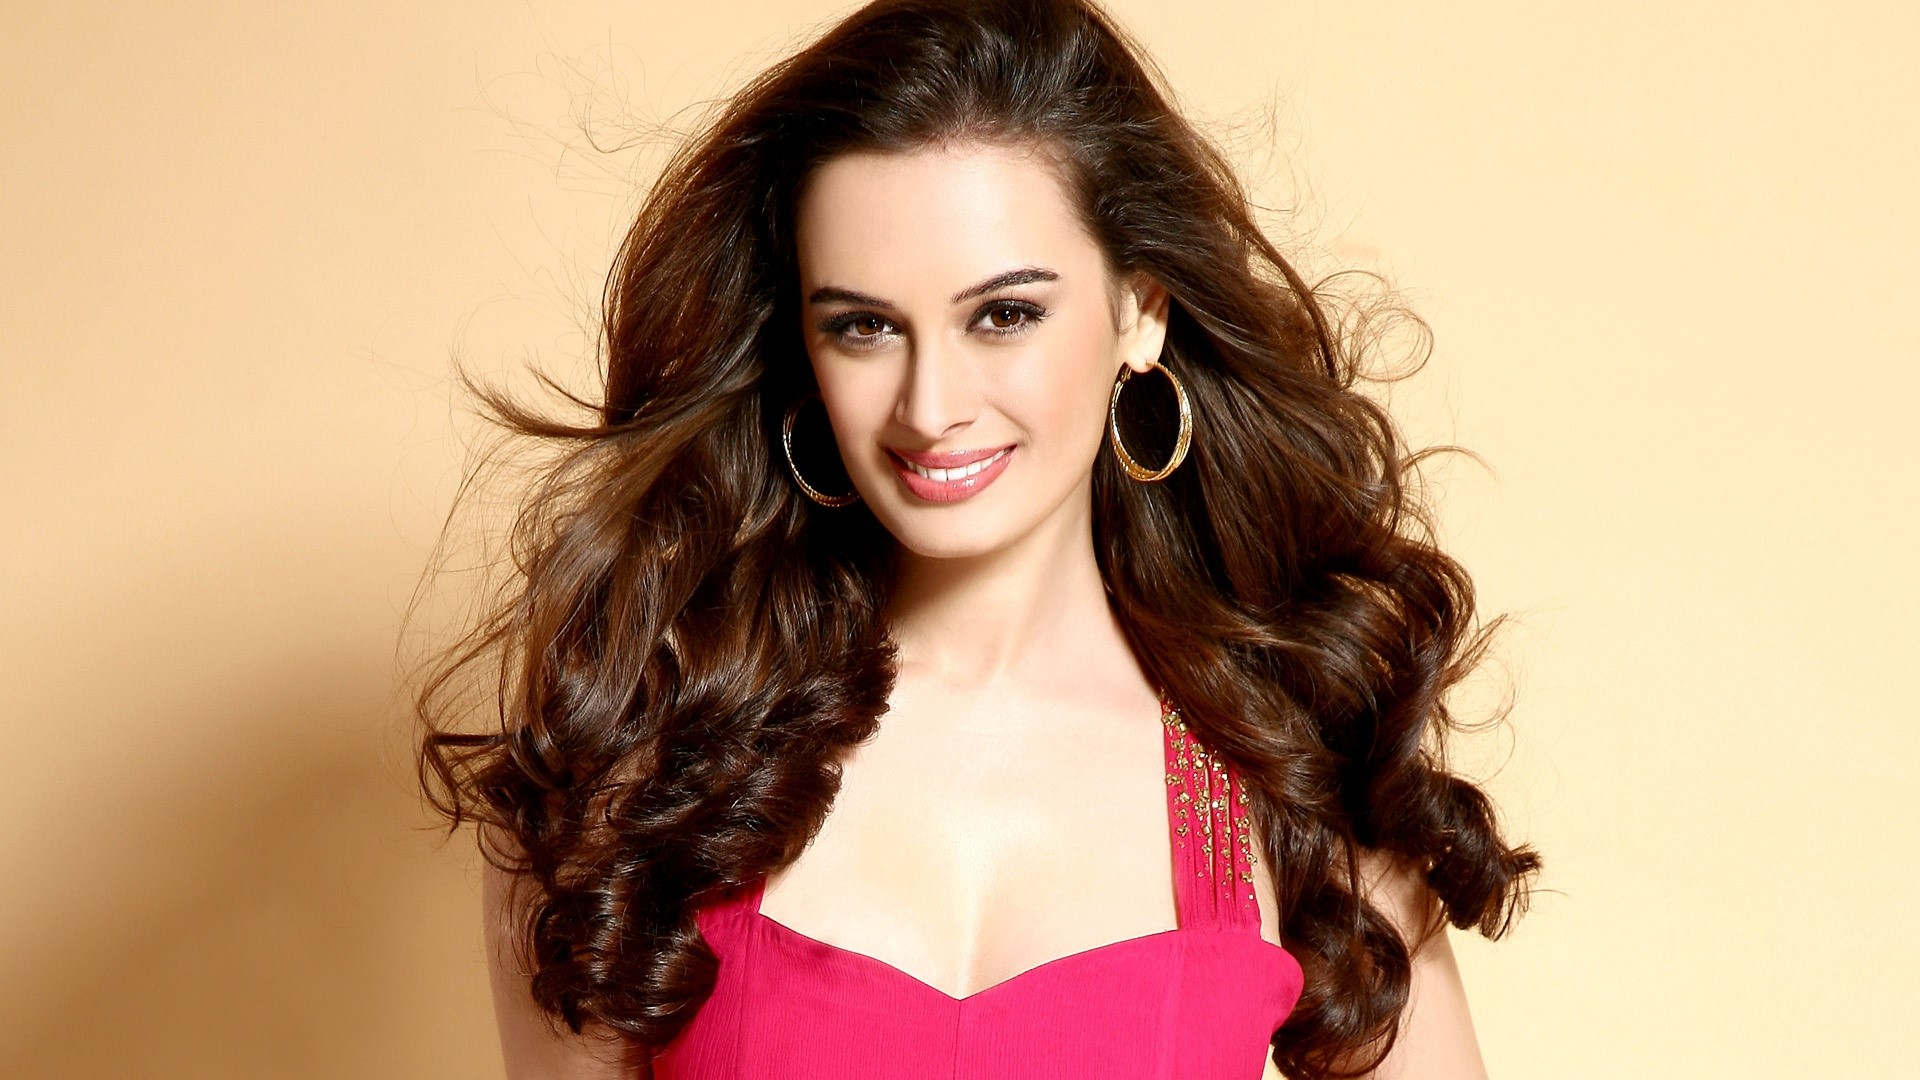 Wallpaper Evelyn Sharma